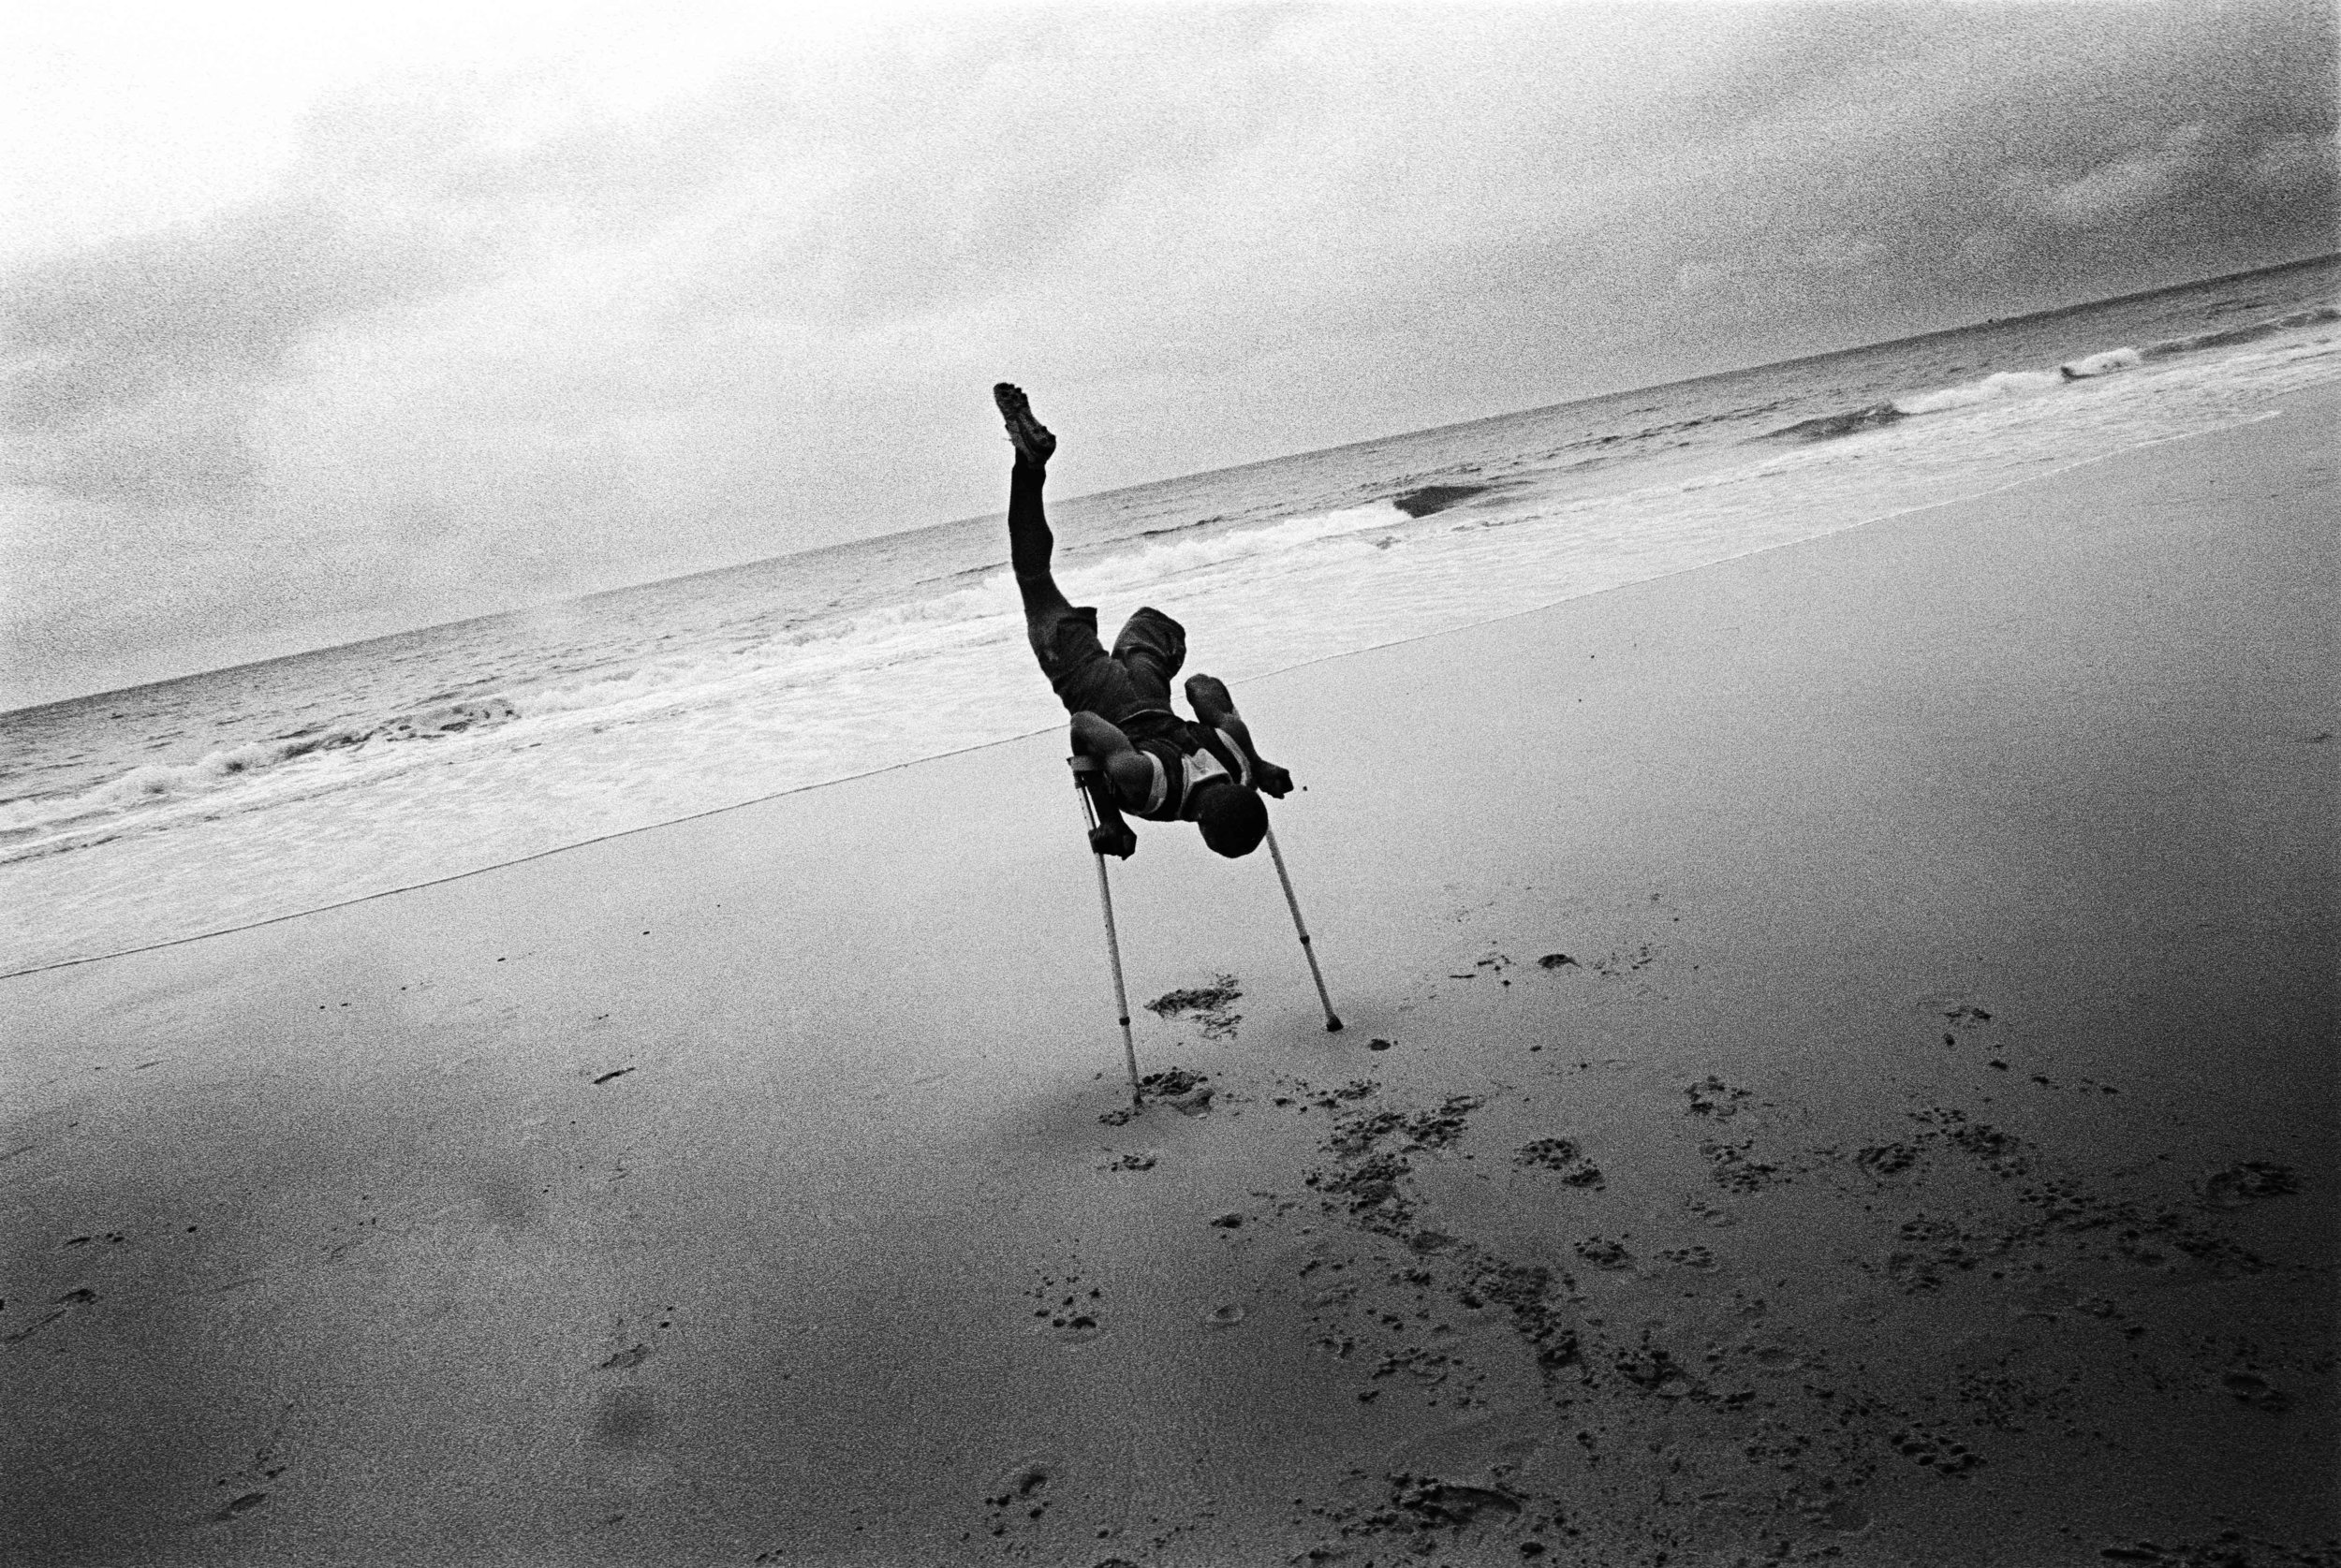 Sierra Leone, Freetown, Kalone, June 2002, A football player from Murray's Dream Team, stretching while training on the beach. Murray's Dream Team is a football team entirely made up of players with one leg. The amputee team are residents of the Murray Town amputees' camp, which is home to victims of rebel atrocities committed during the civil war.